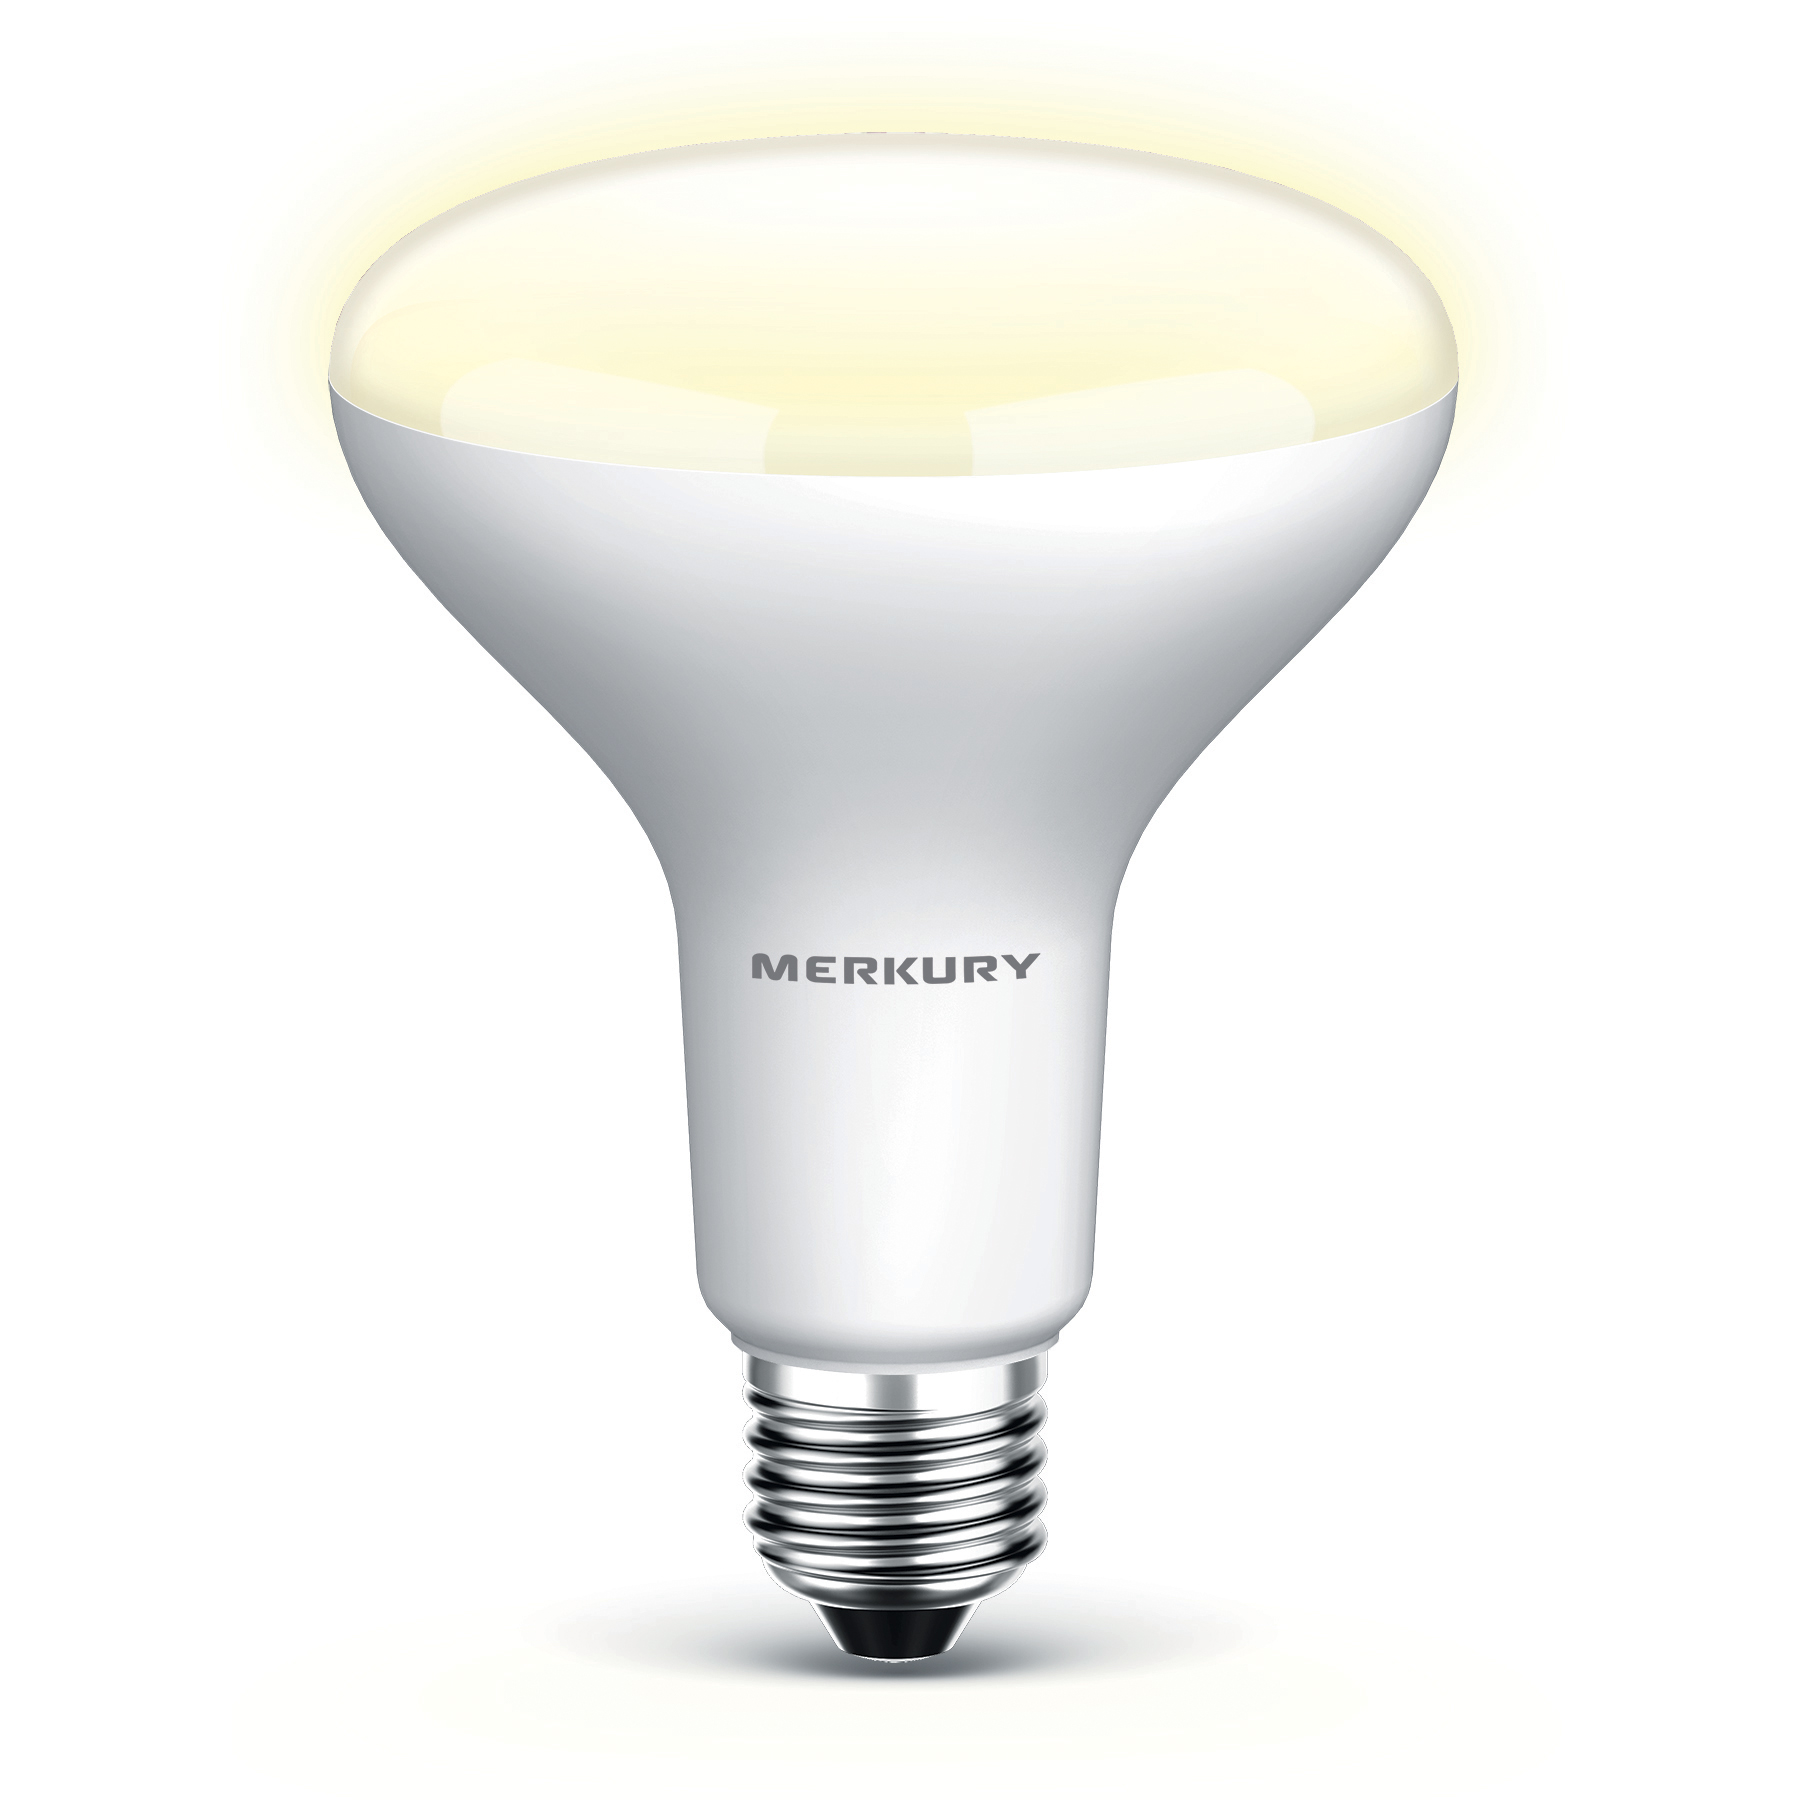 Merkury Innovations BR30 Smart Light Bulb, 65W Tunable White LED, 1-Pack